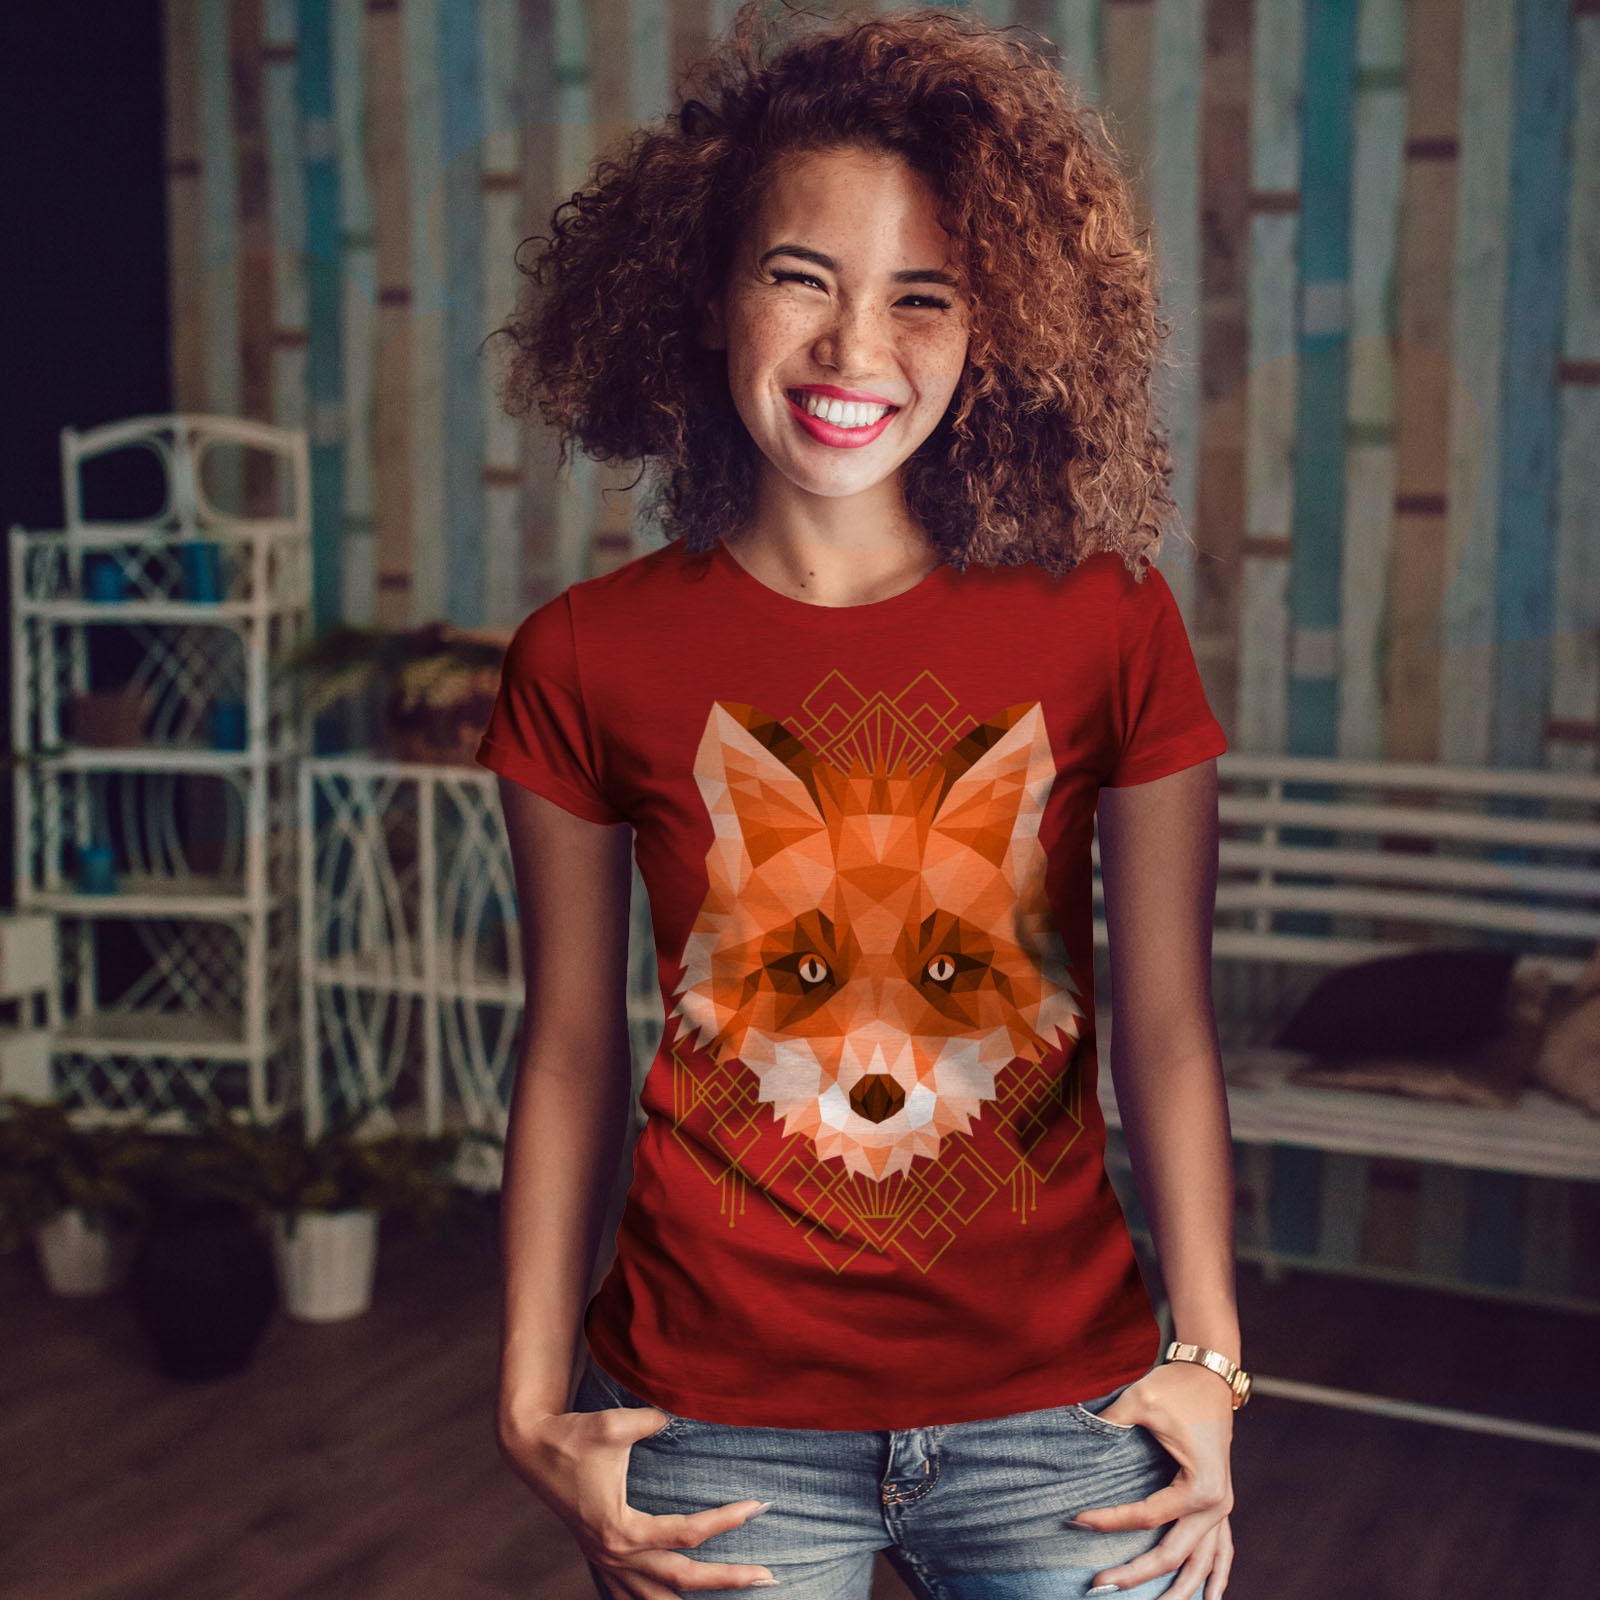 Wellcoda-polygonale-Fire-Fox-T-shirt-femme-animal-Casual-Design-Imprime-Tee miniature 10